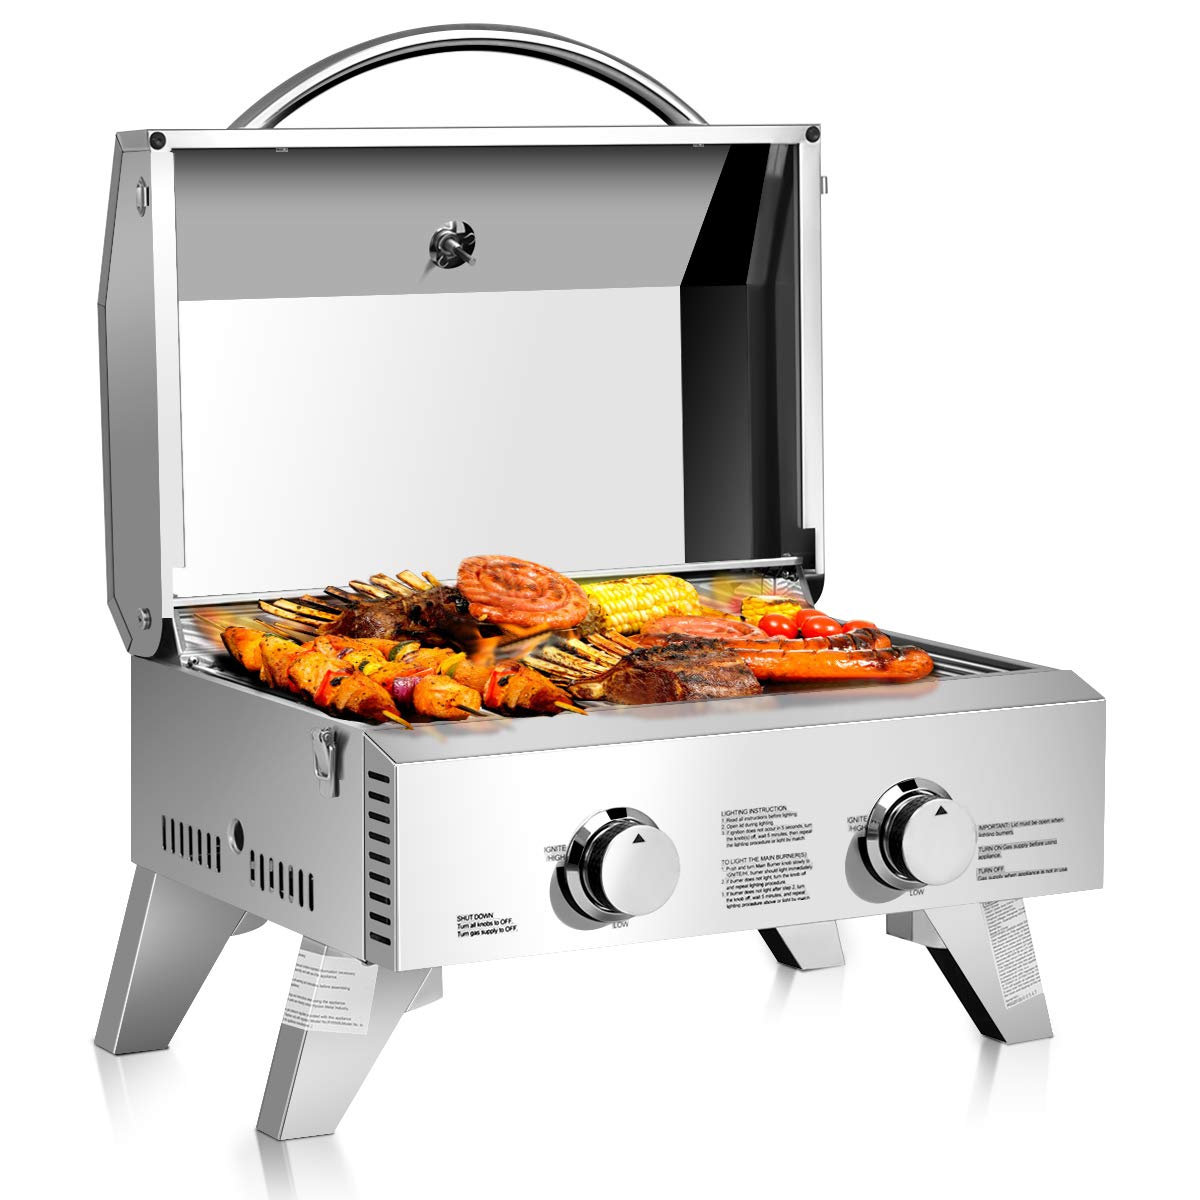 Giantex Propane Tabletop Gas Grill Stainless Steel Two-Burner BBQ, with Foldable Leg, 20000 BTU, Perfect for Camping, Picnics or Any Outdoor Use, 22'' x 18'' x 15'', Silver by Giantex